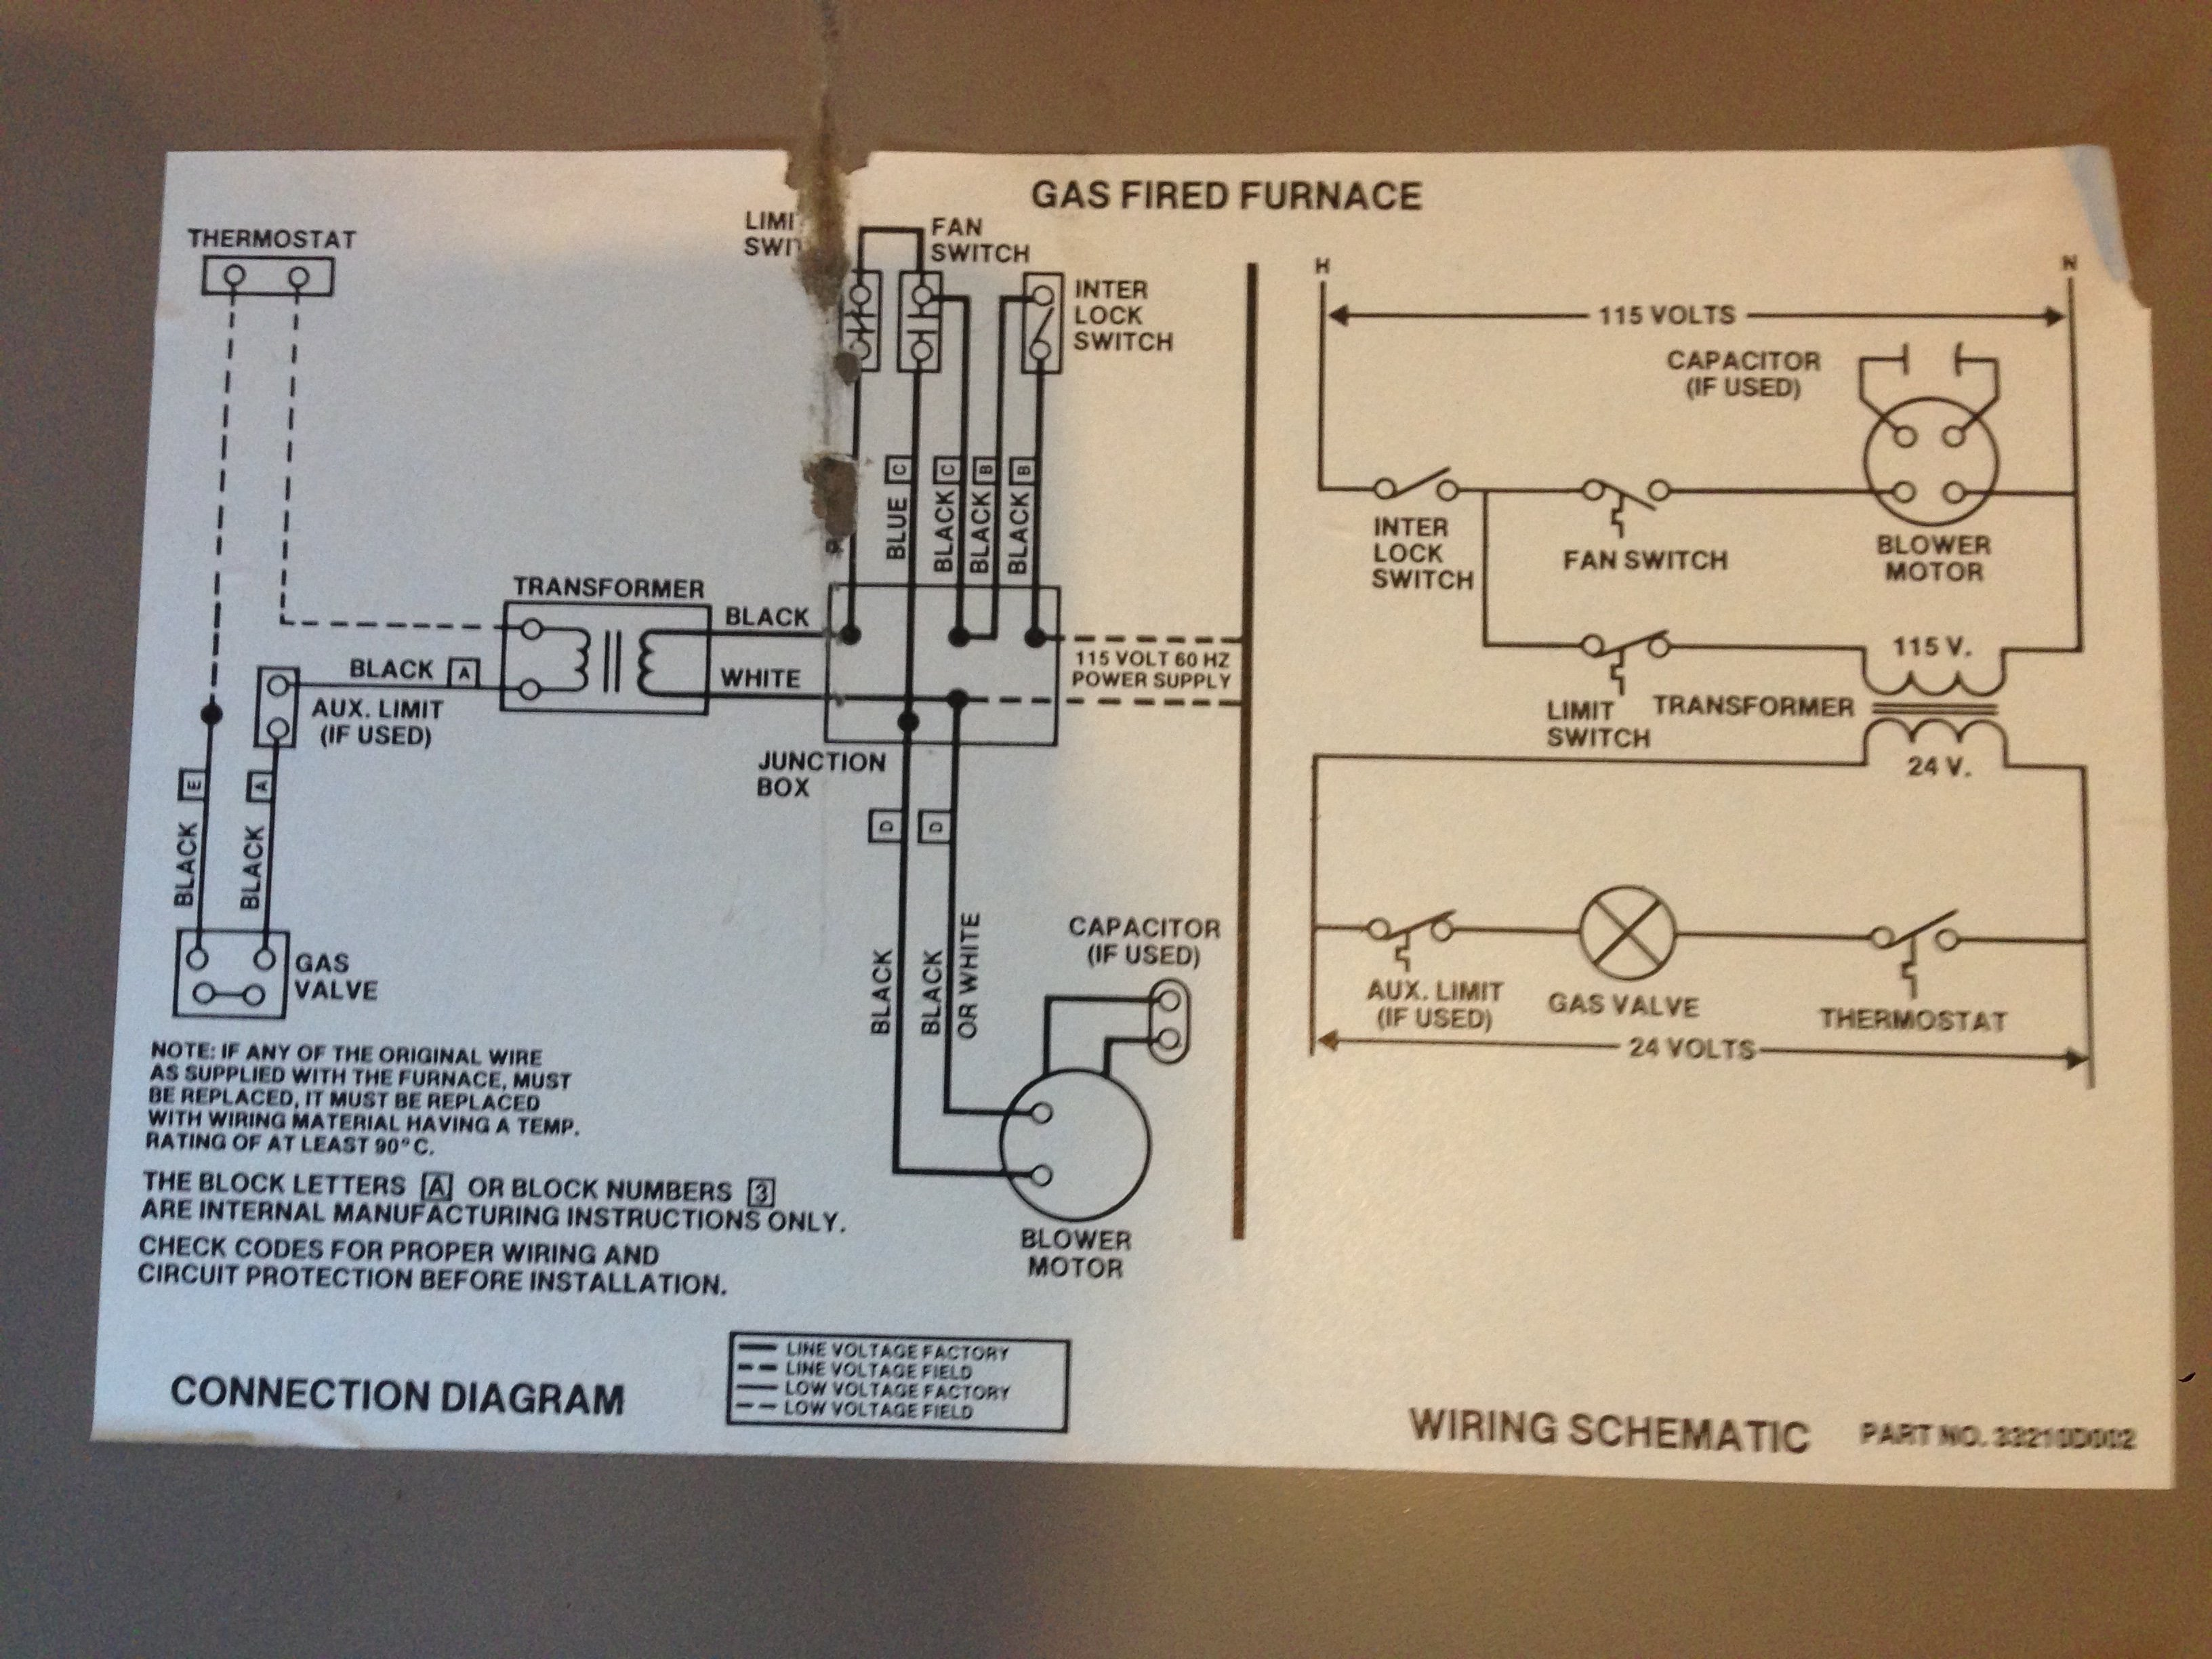 i'm looking for the wiring instructions for a honeywell ... furnace gas valve wiring diagram furnace gas valve wiring #4